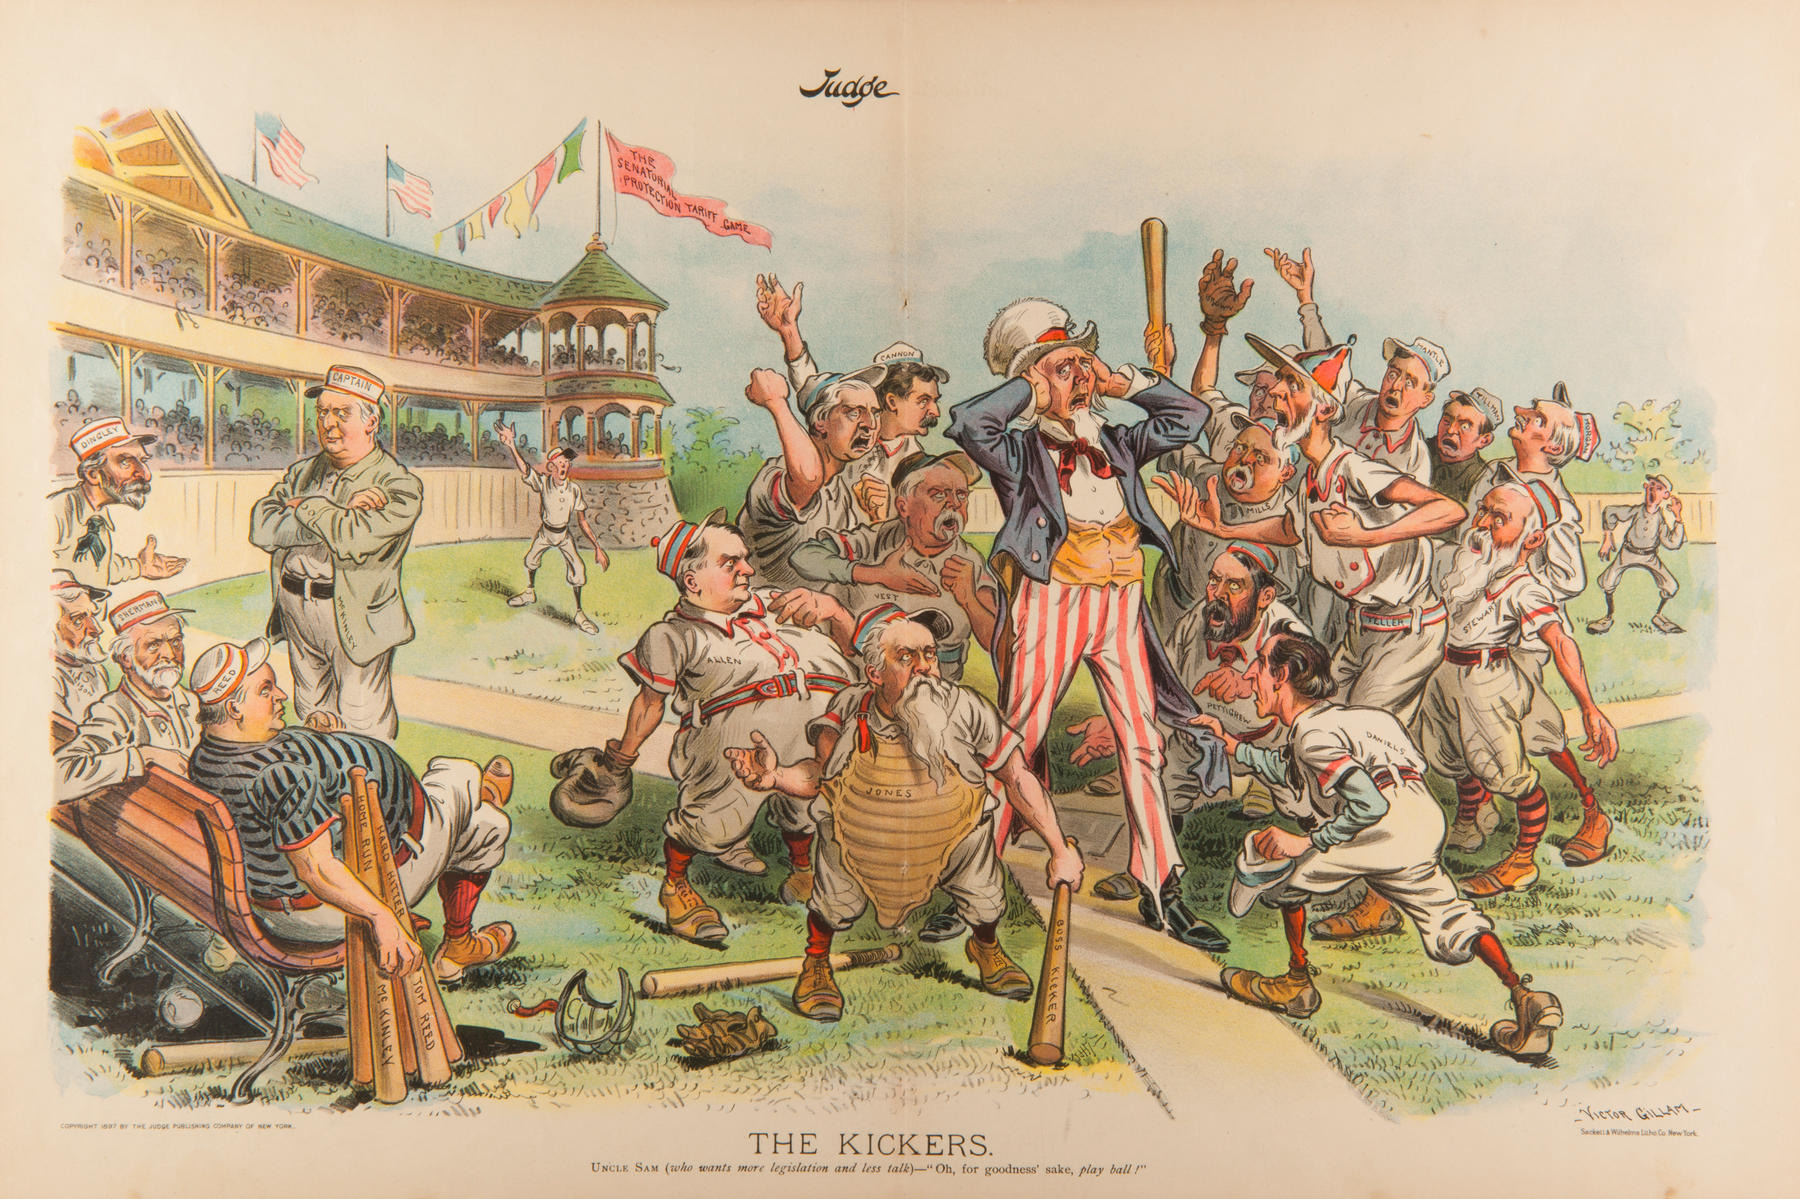 """In this 1897 lithograph from Judge, """"The Kickers,"""" cartoonist Victor Gillam depicts various United States senators arguing with Uncle Sam, the umpire. This coincided with the fierce Senate debate over proposed tariff revisions. (BL-387.2001 – Milo Stewart Jr./National Baseball Hall of Fame Library)"""